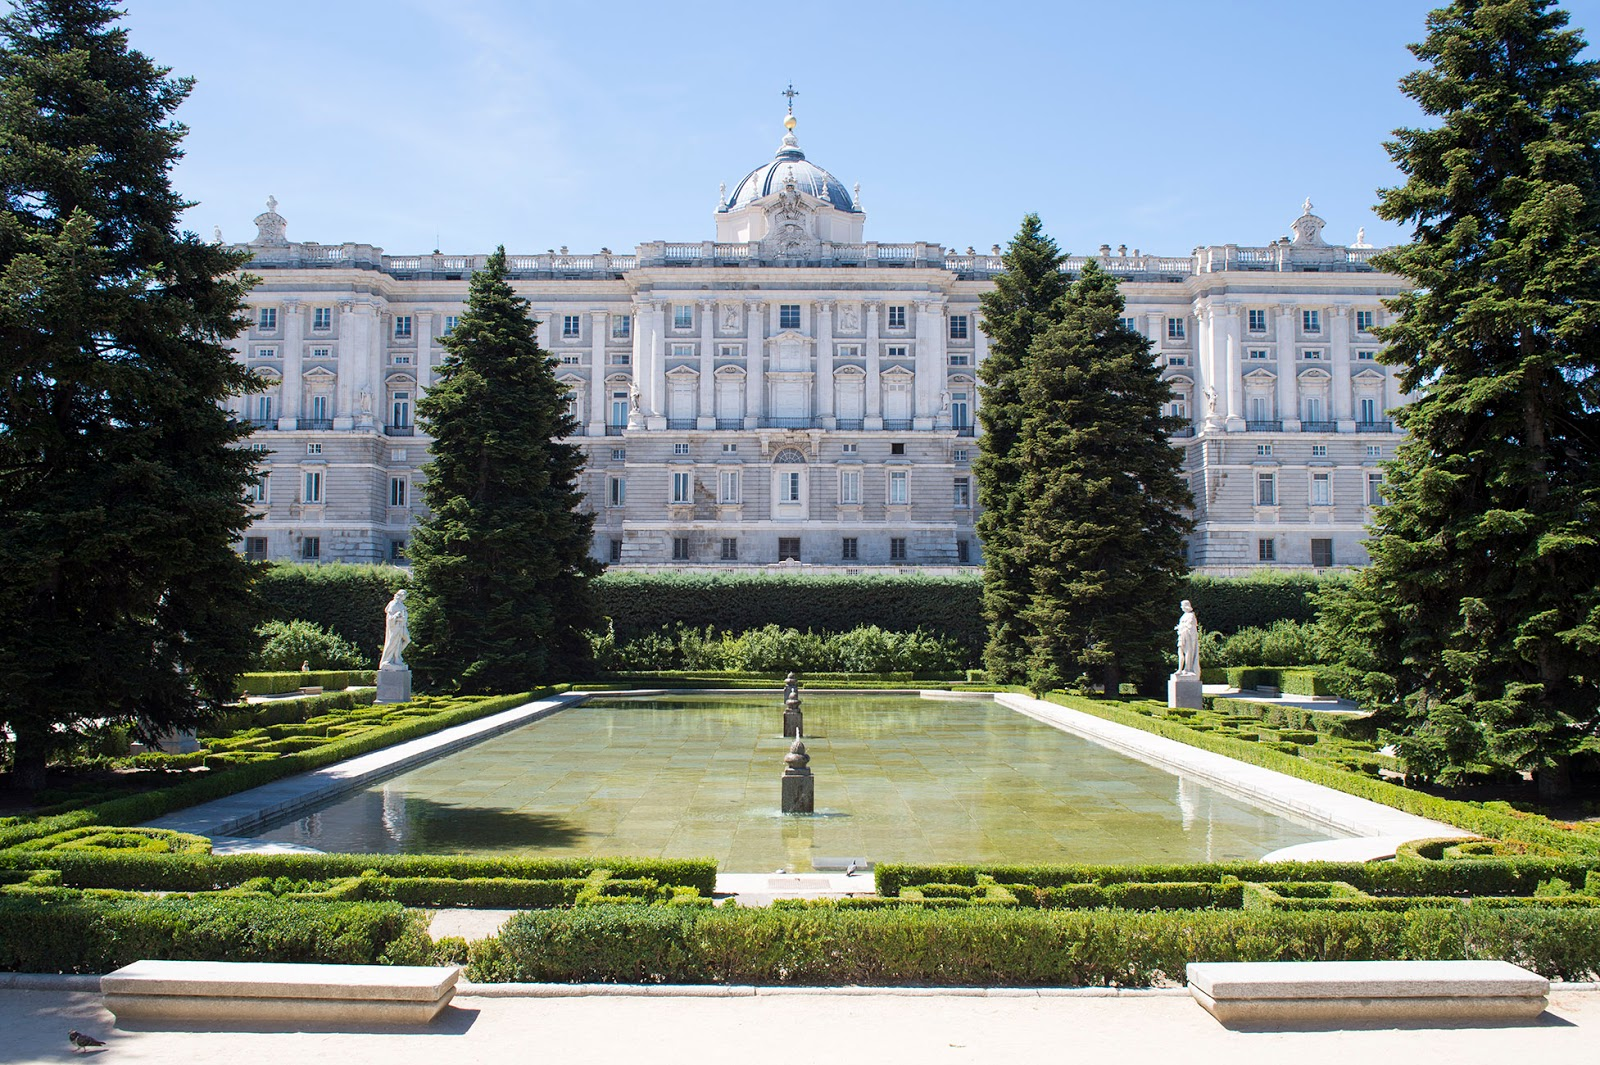 royal palace sabatini gardens madrid spain